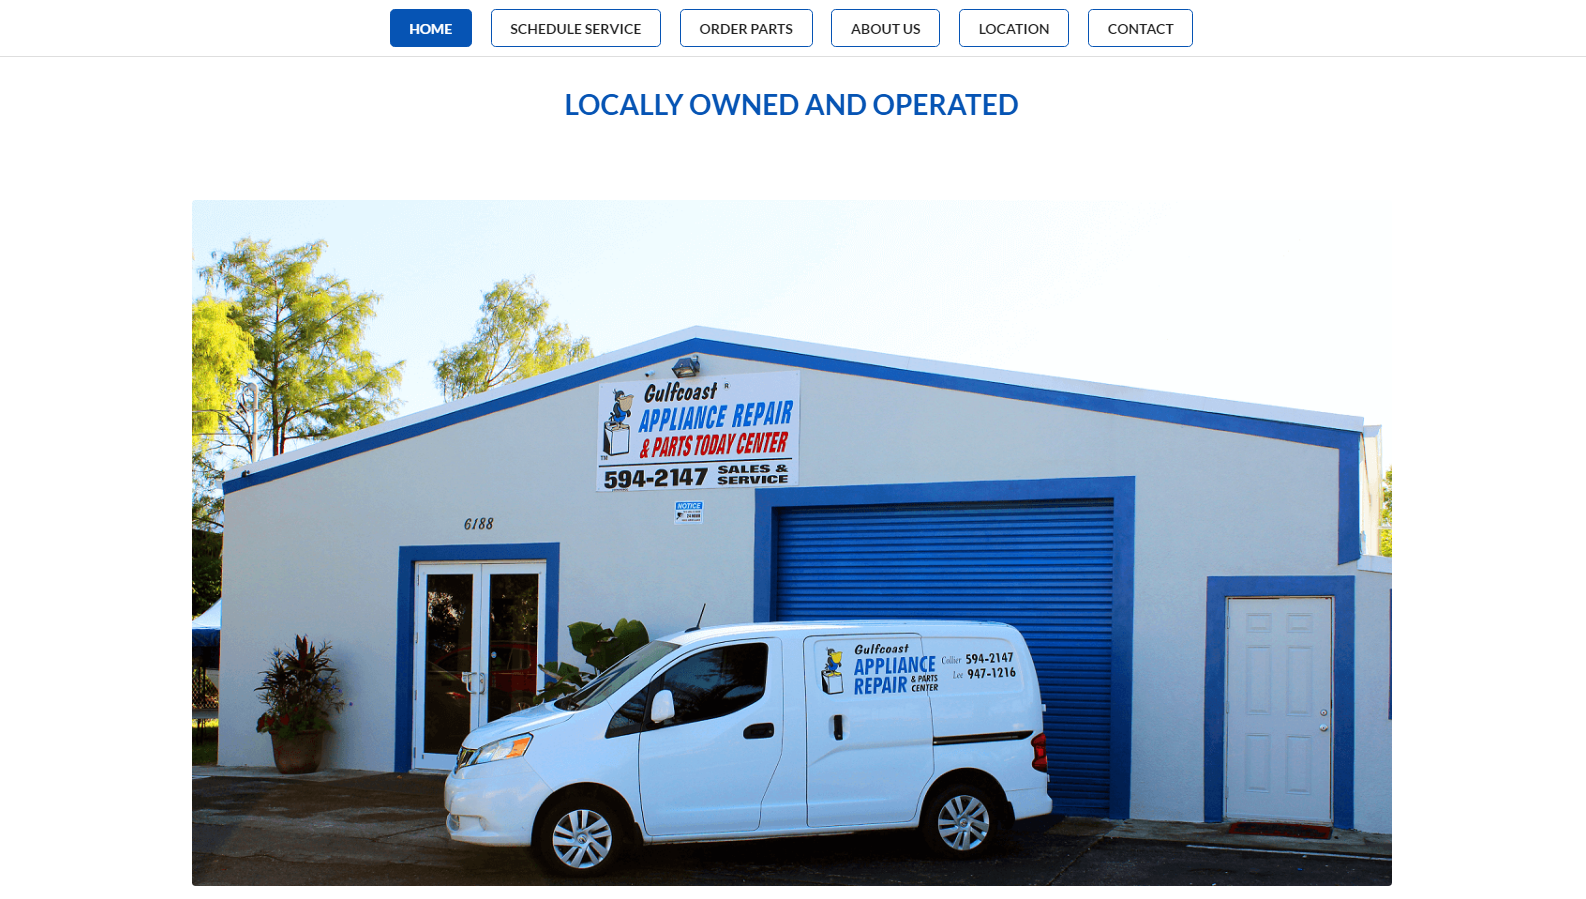 gulfcoast appliance repair - web design by alex belan photography